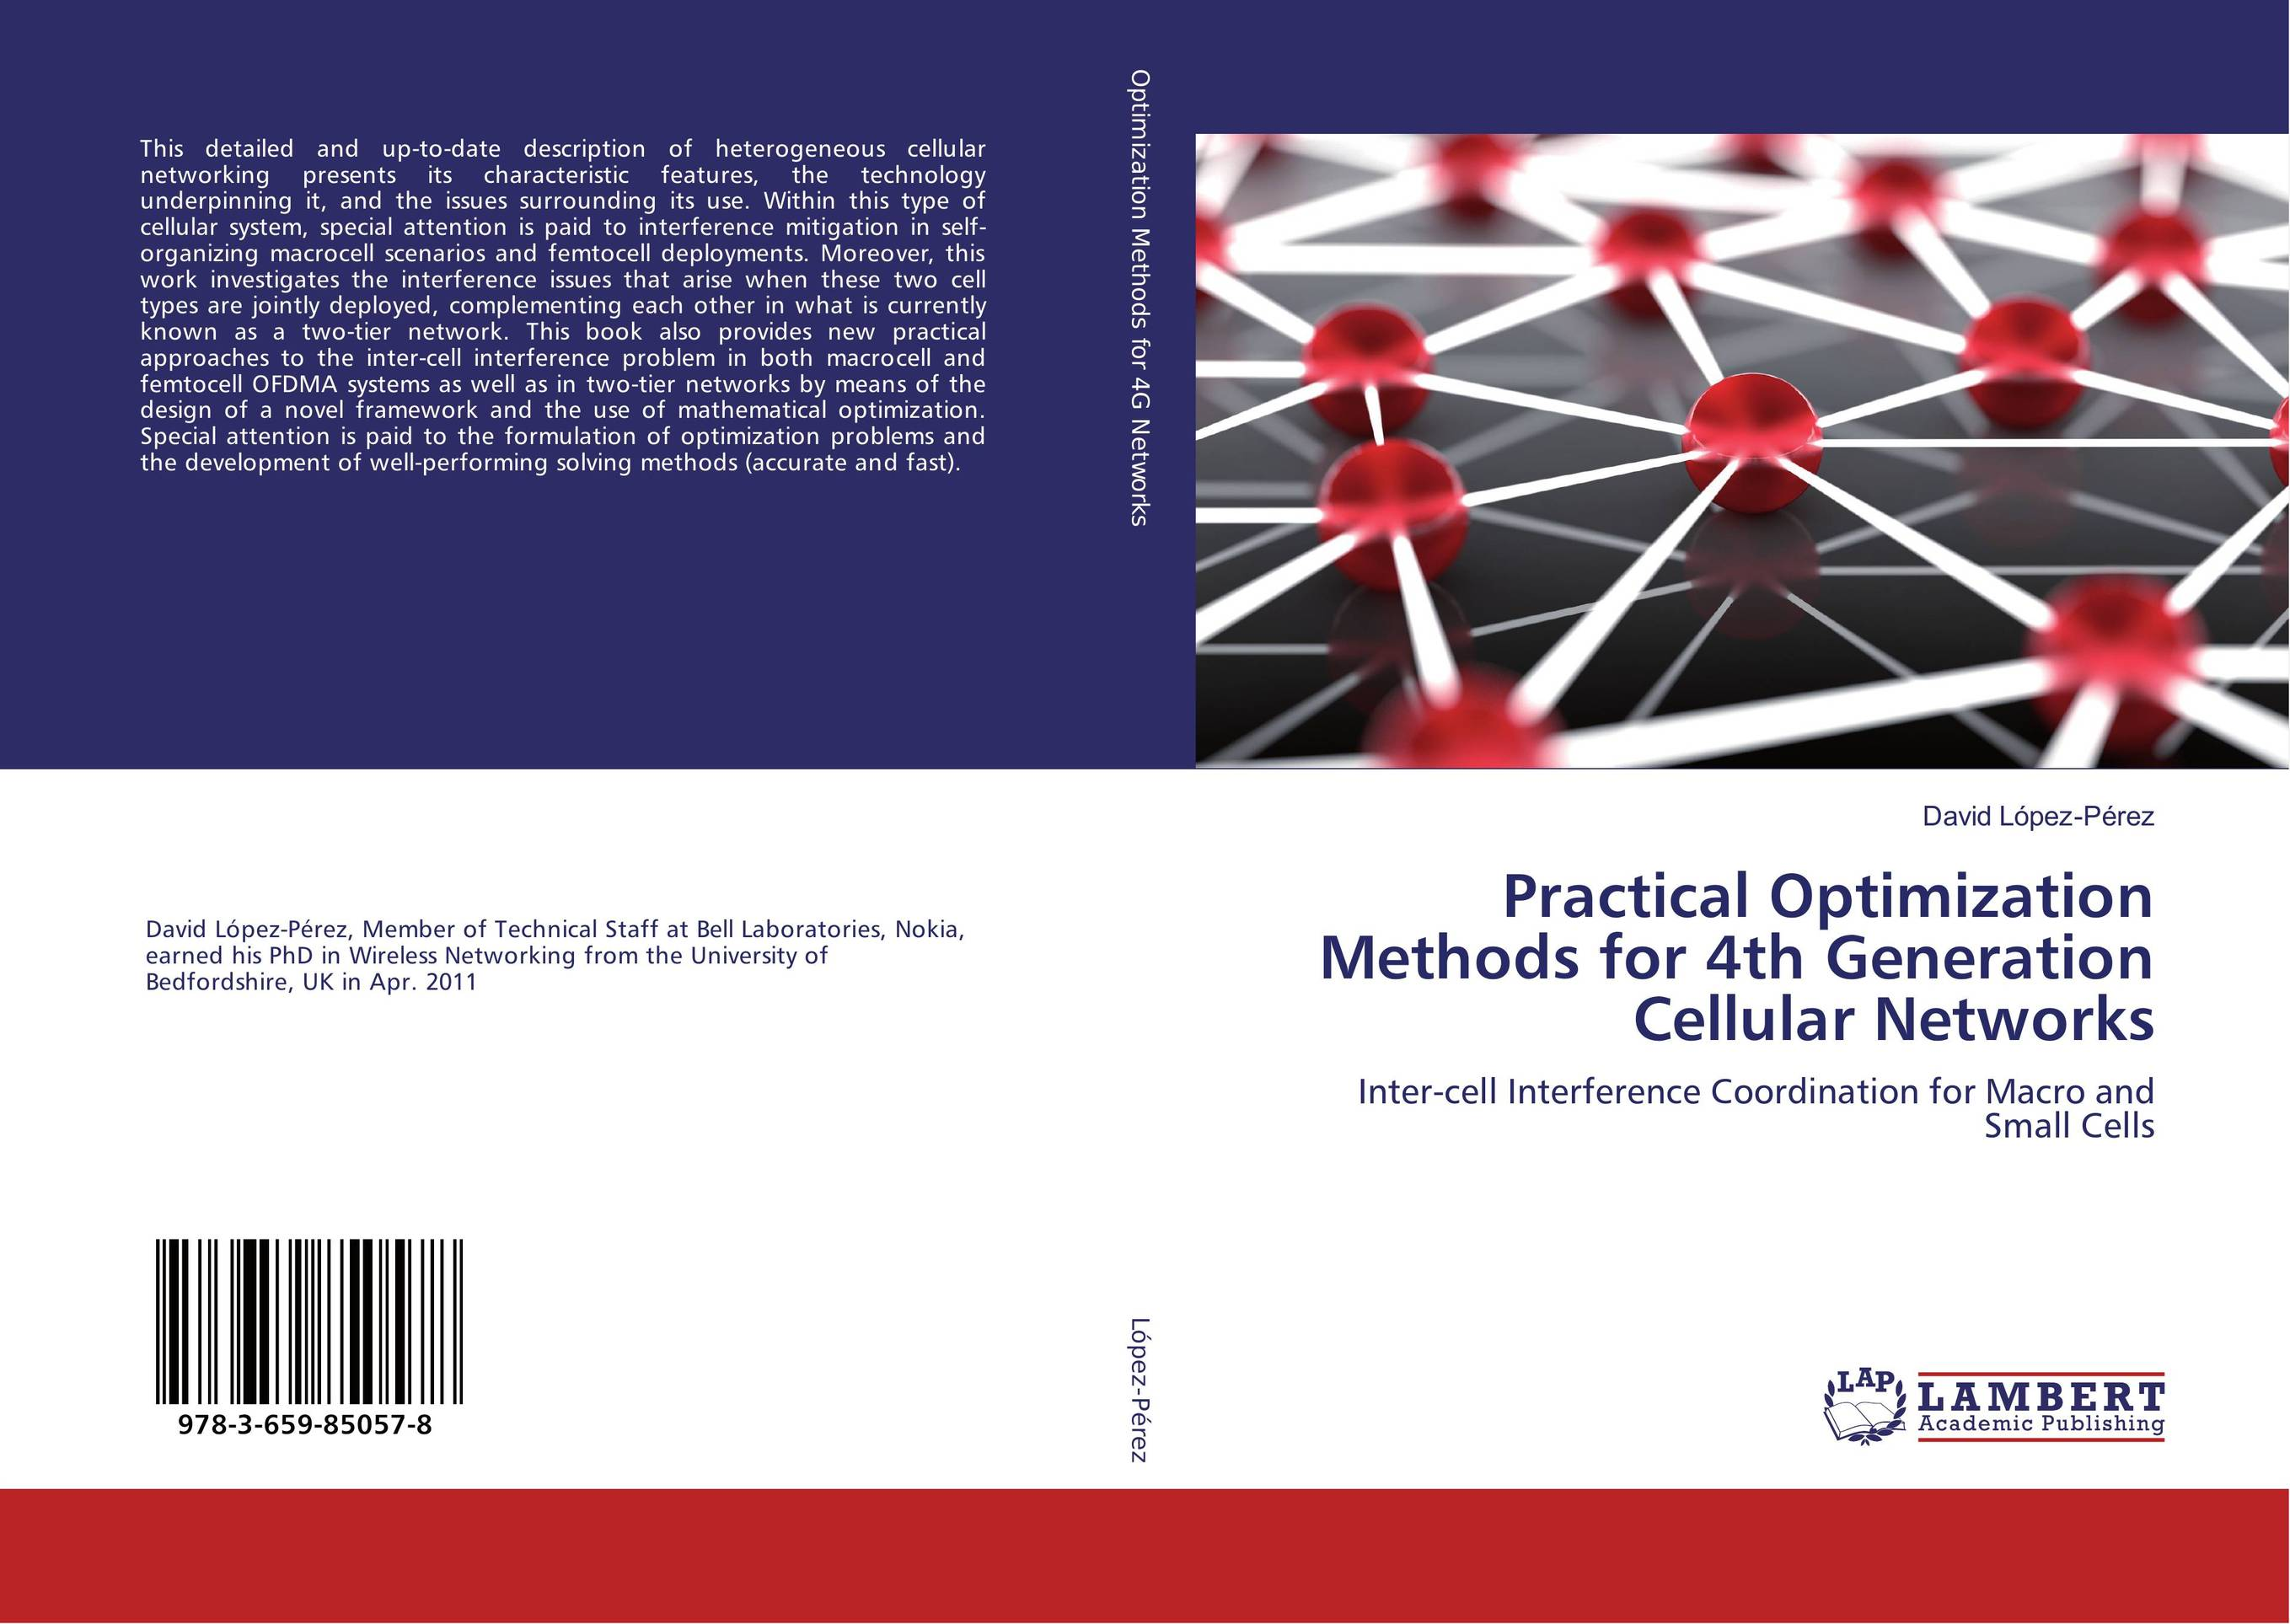 Practical Optimization Methods for 4th Generation Cellular Networks fuzzy portfolio optimization with application of forecasting methods